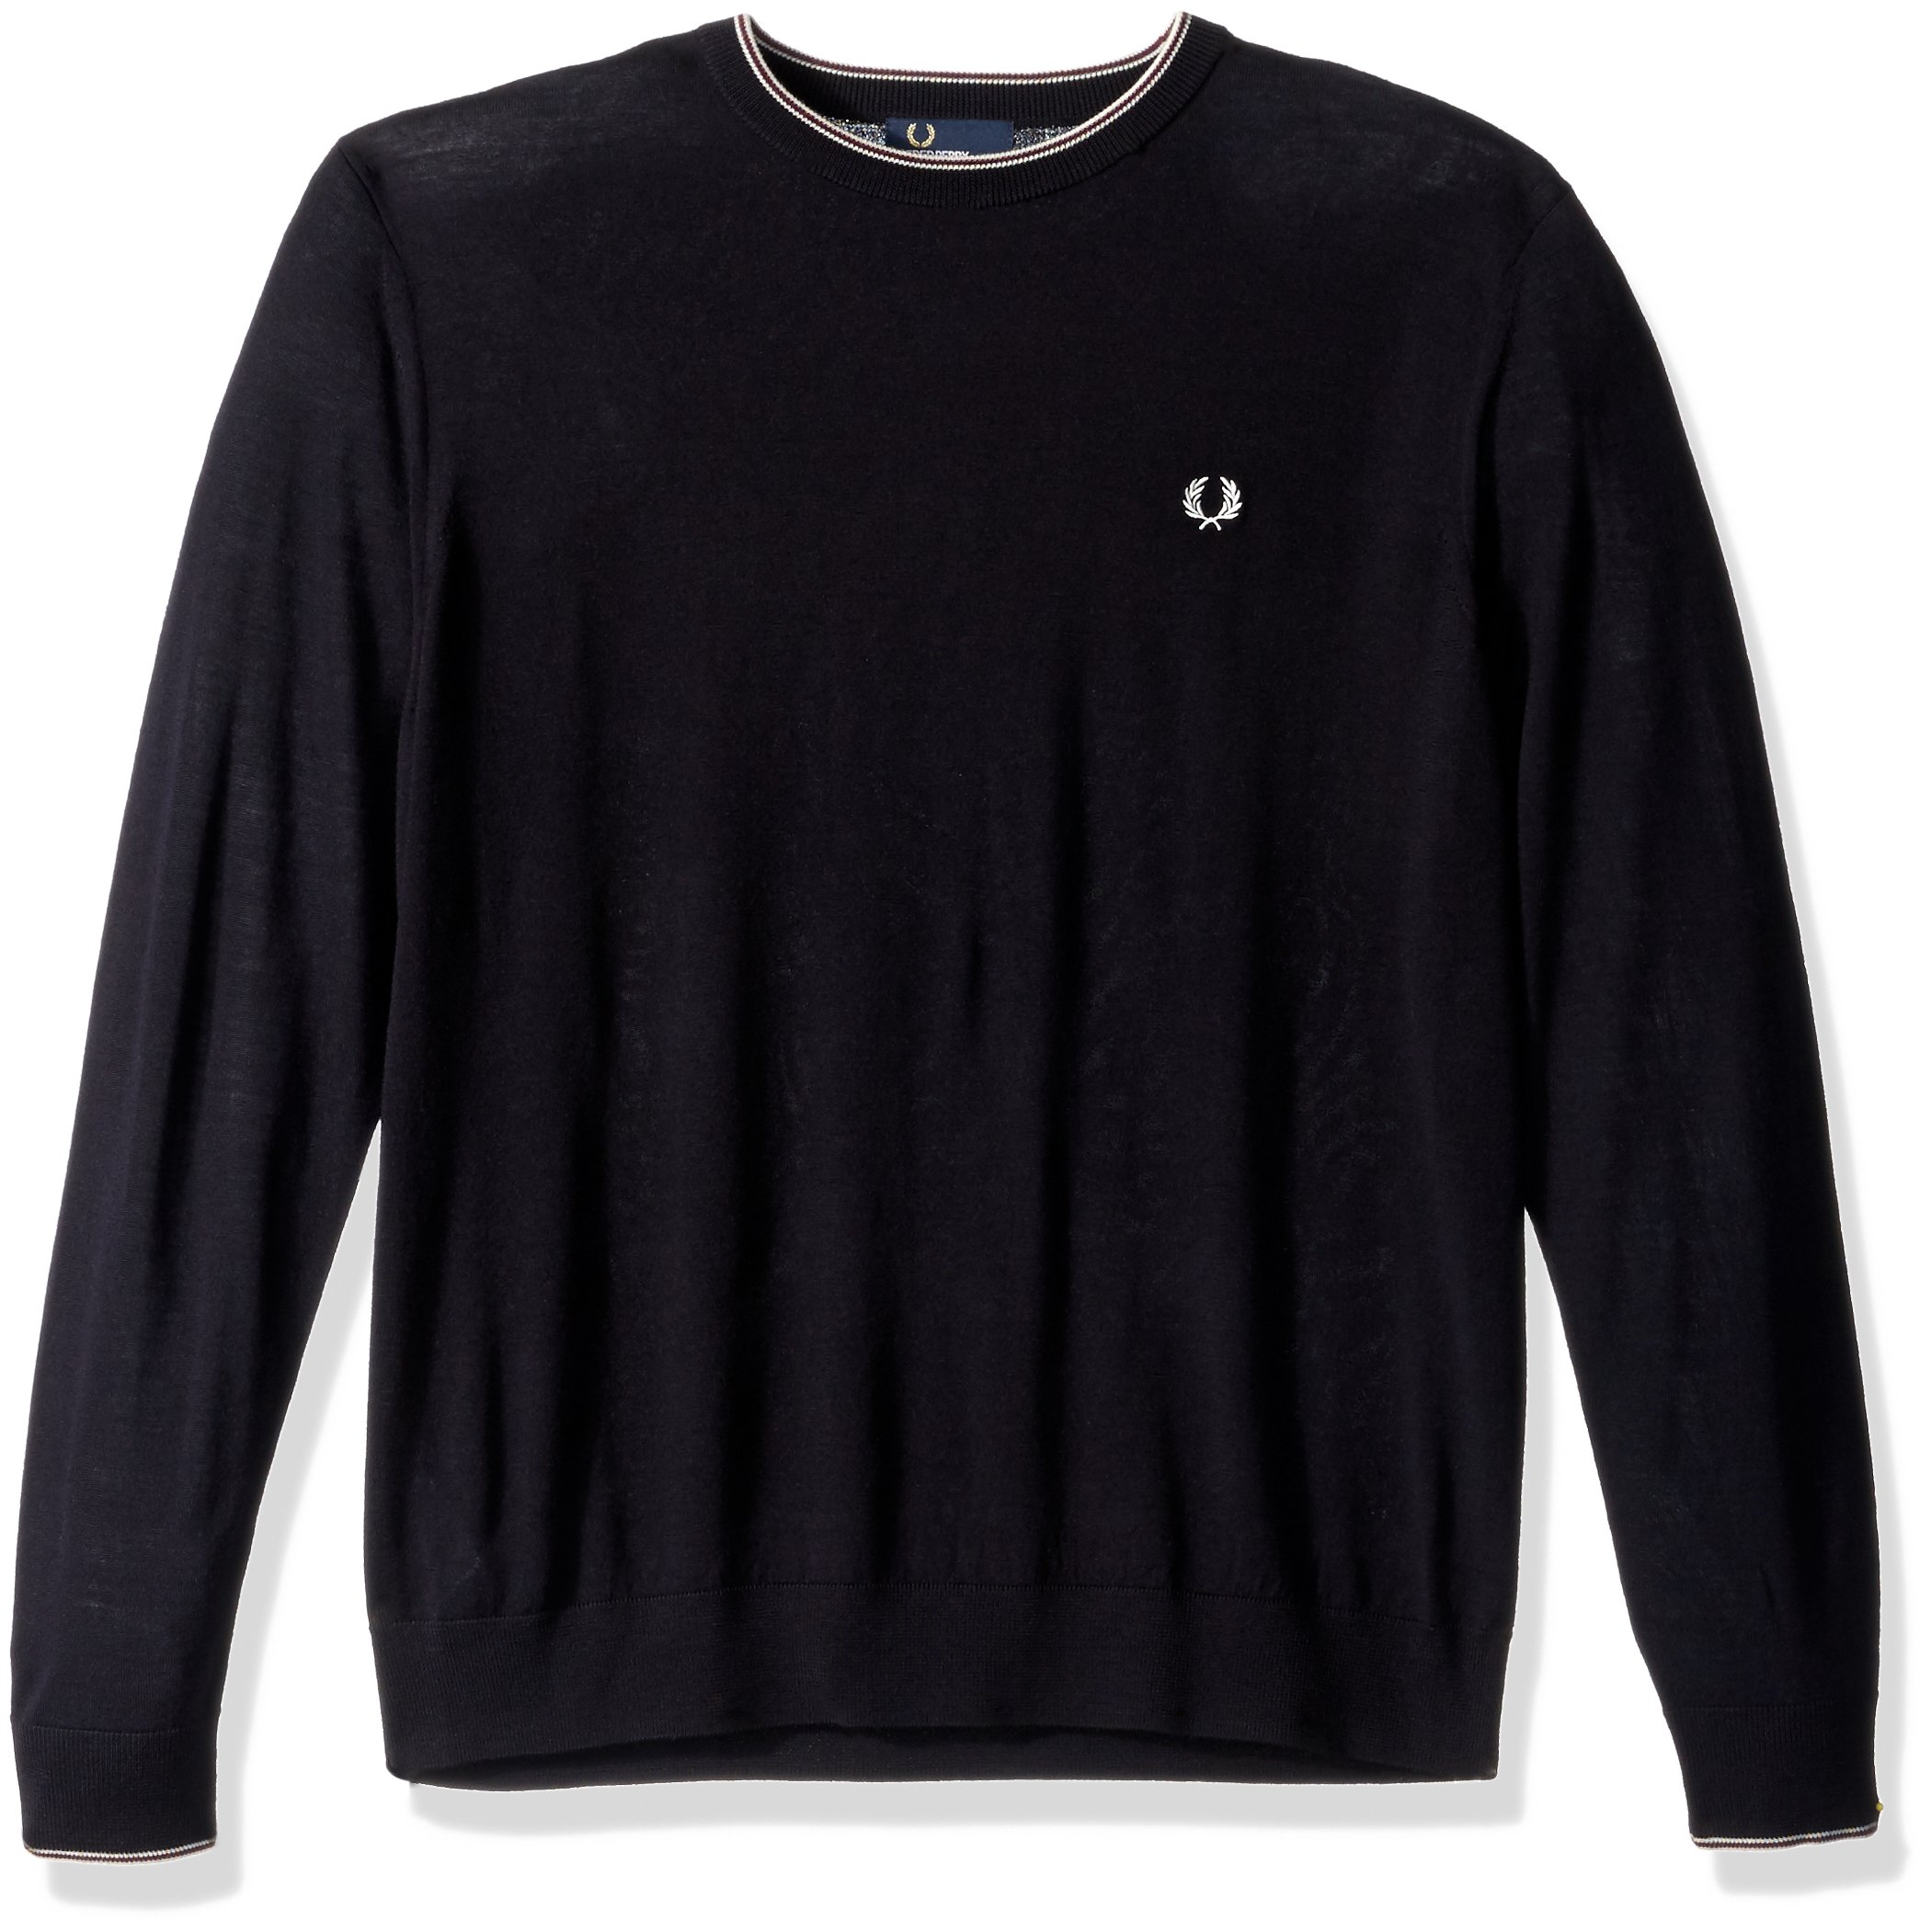 Fred Perry Men's Fine Merino Crew Neck Sweater, Navy, Large